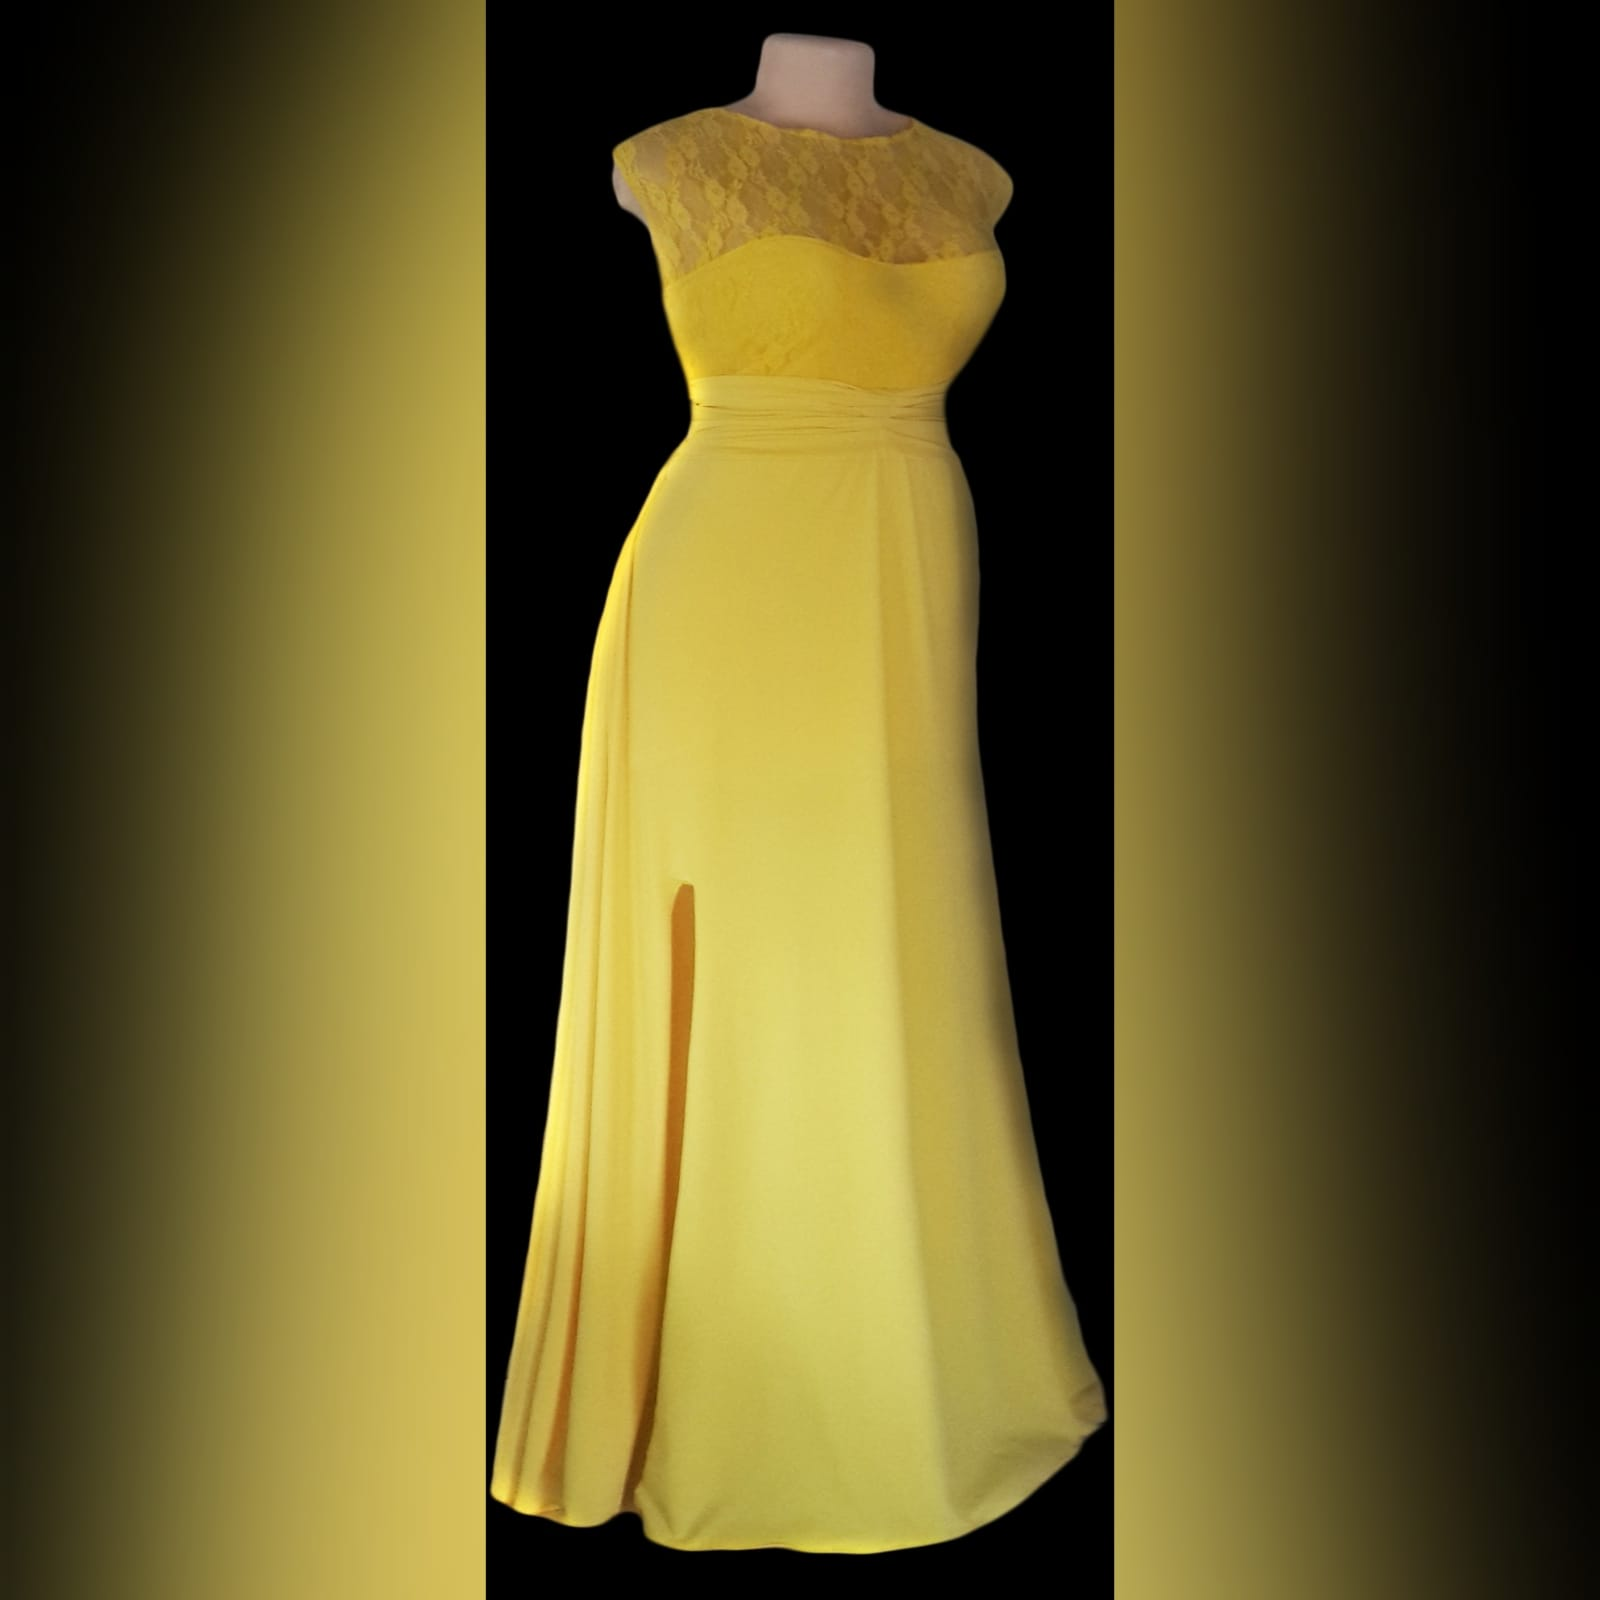 Yellow long evening dress with a lace bodice 1 yellow long evening dress with a lace bodice, rouged belt and a slit. Flowy.